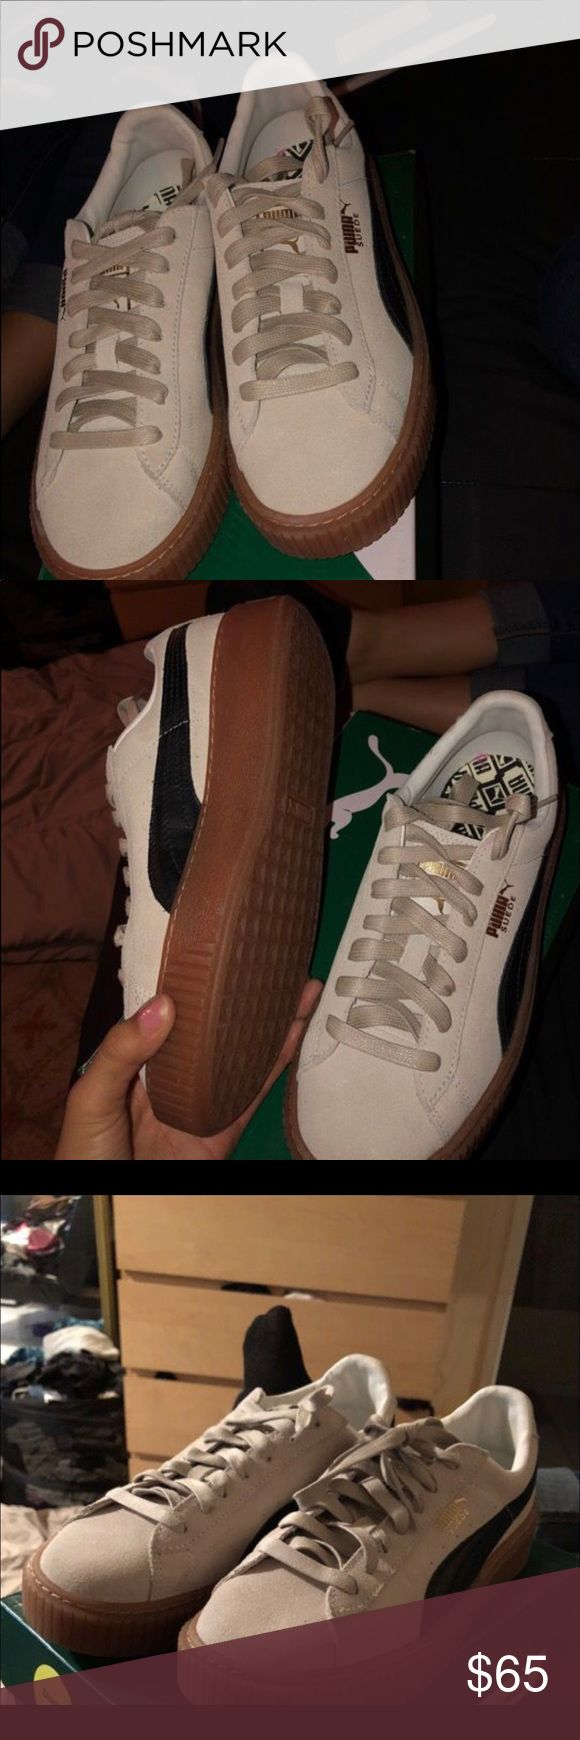 Puma New*. Never been used pumas. Super cute but sister didn't like them. They don't fit me so decided to sell them for half the price I got them for. Puma Shoes Platforms